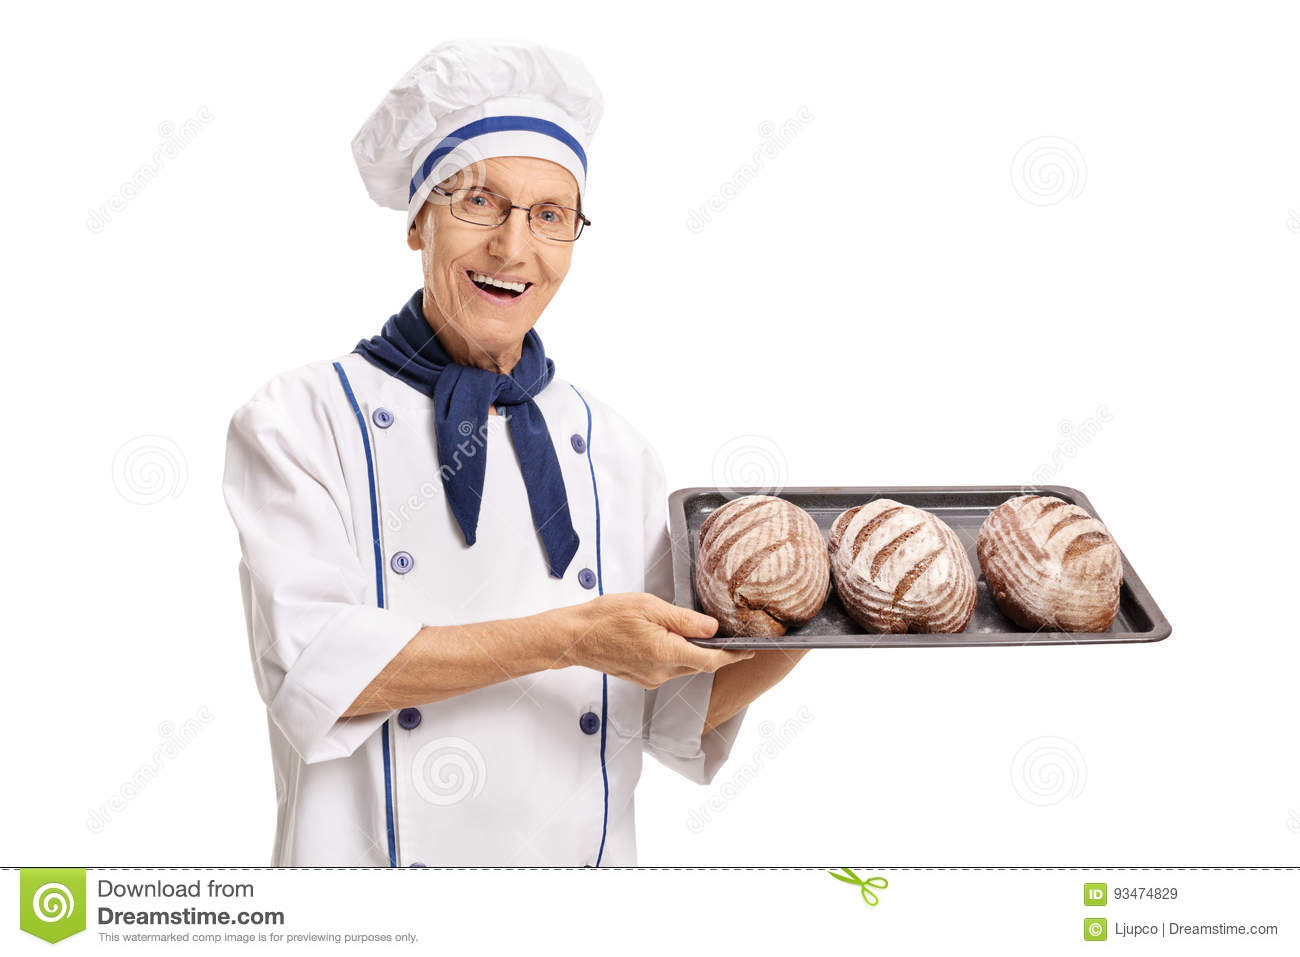 Elderly baker holding a tray with freshly baked breads